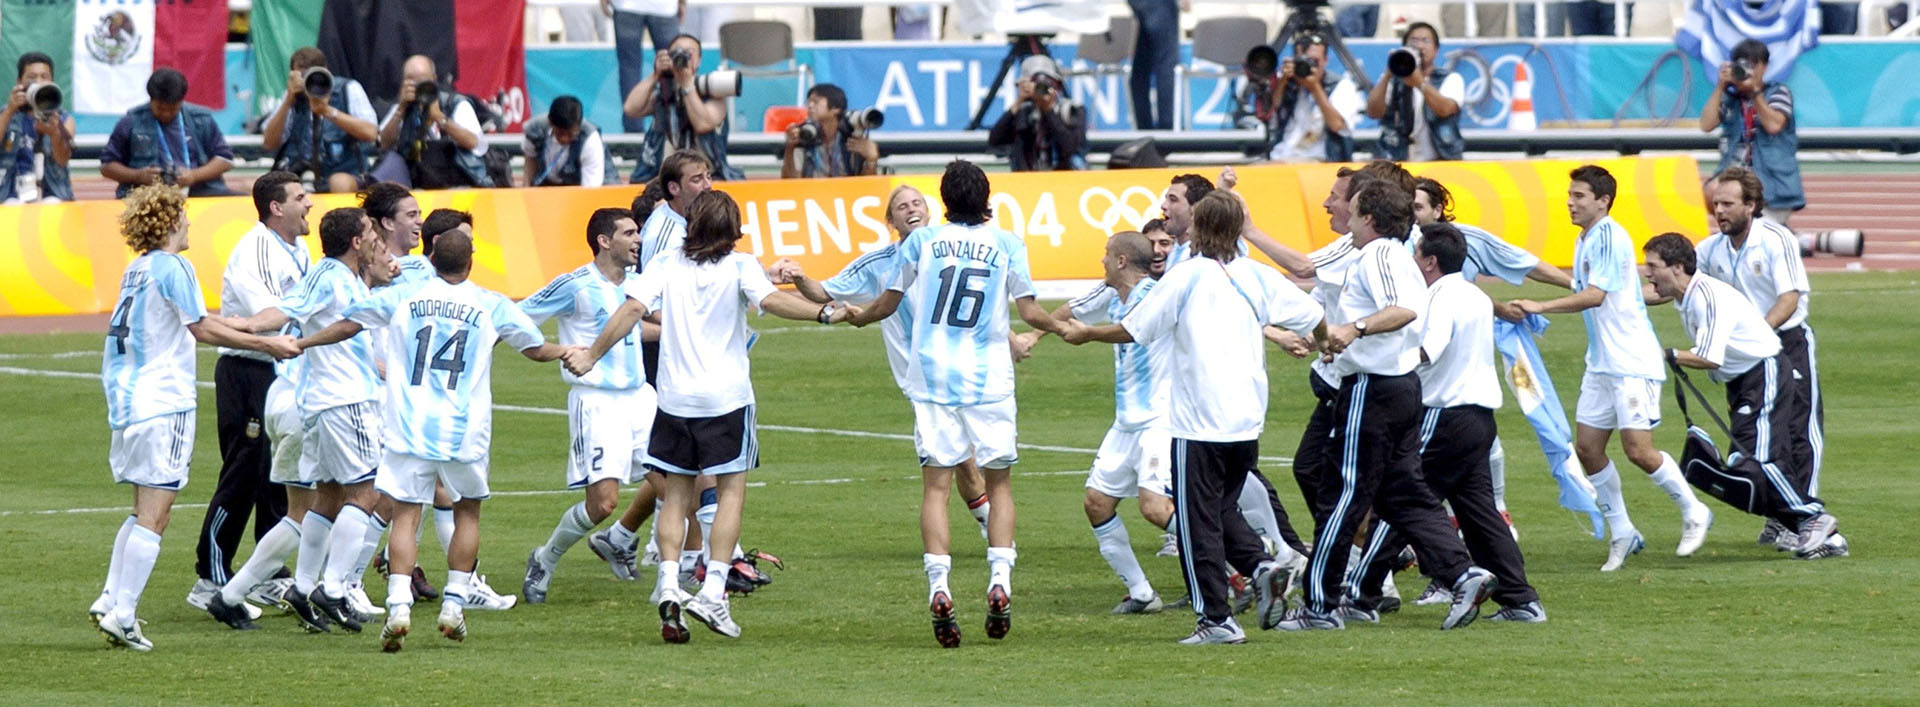 Mandatory Credit: Photo by Shutterstock (493079b) FOOTBALL FINAL - ARGENTINA V PARAGUAY No 6 GABRIL HEINZE (ARG). ARGENTINA WIN THE GOLD. 2004 OLYMPIC GAMES, ATHENS, GREECE - 28 AUG 2004